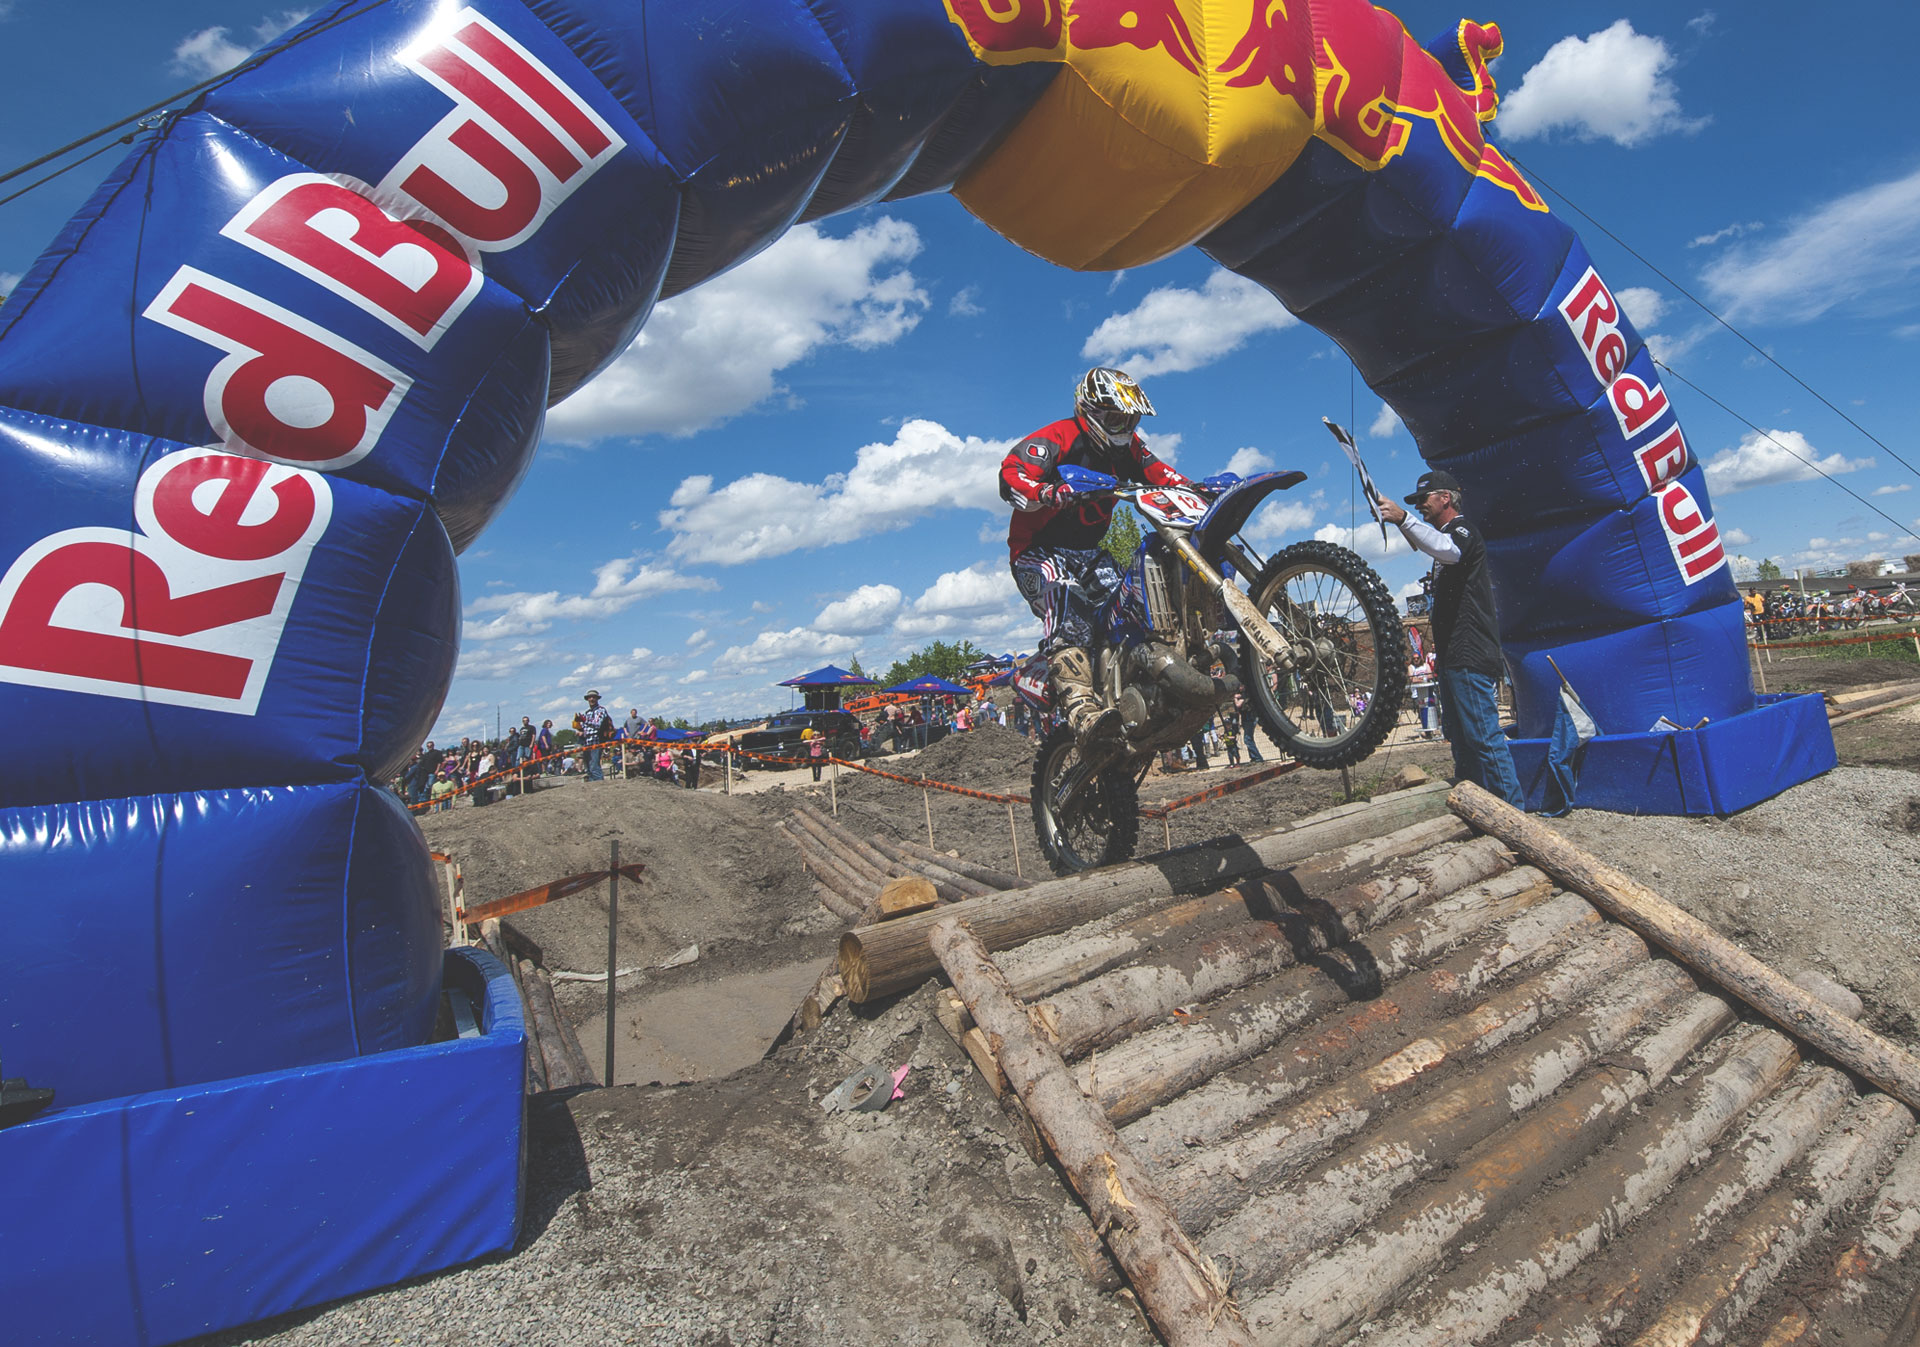 Experience the thrill of live motocross action